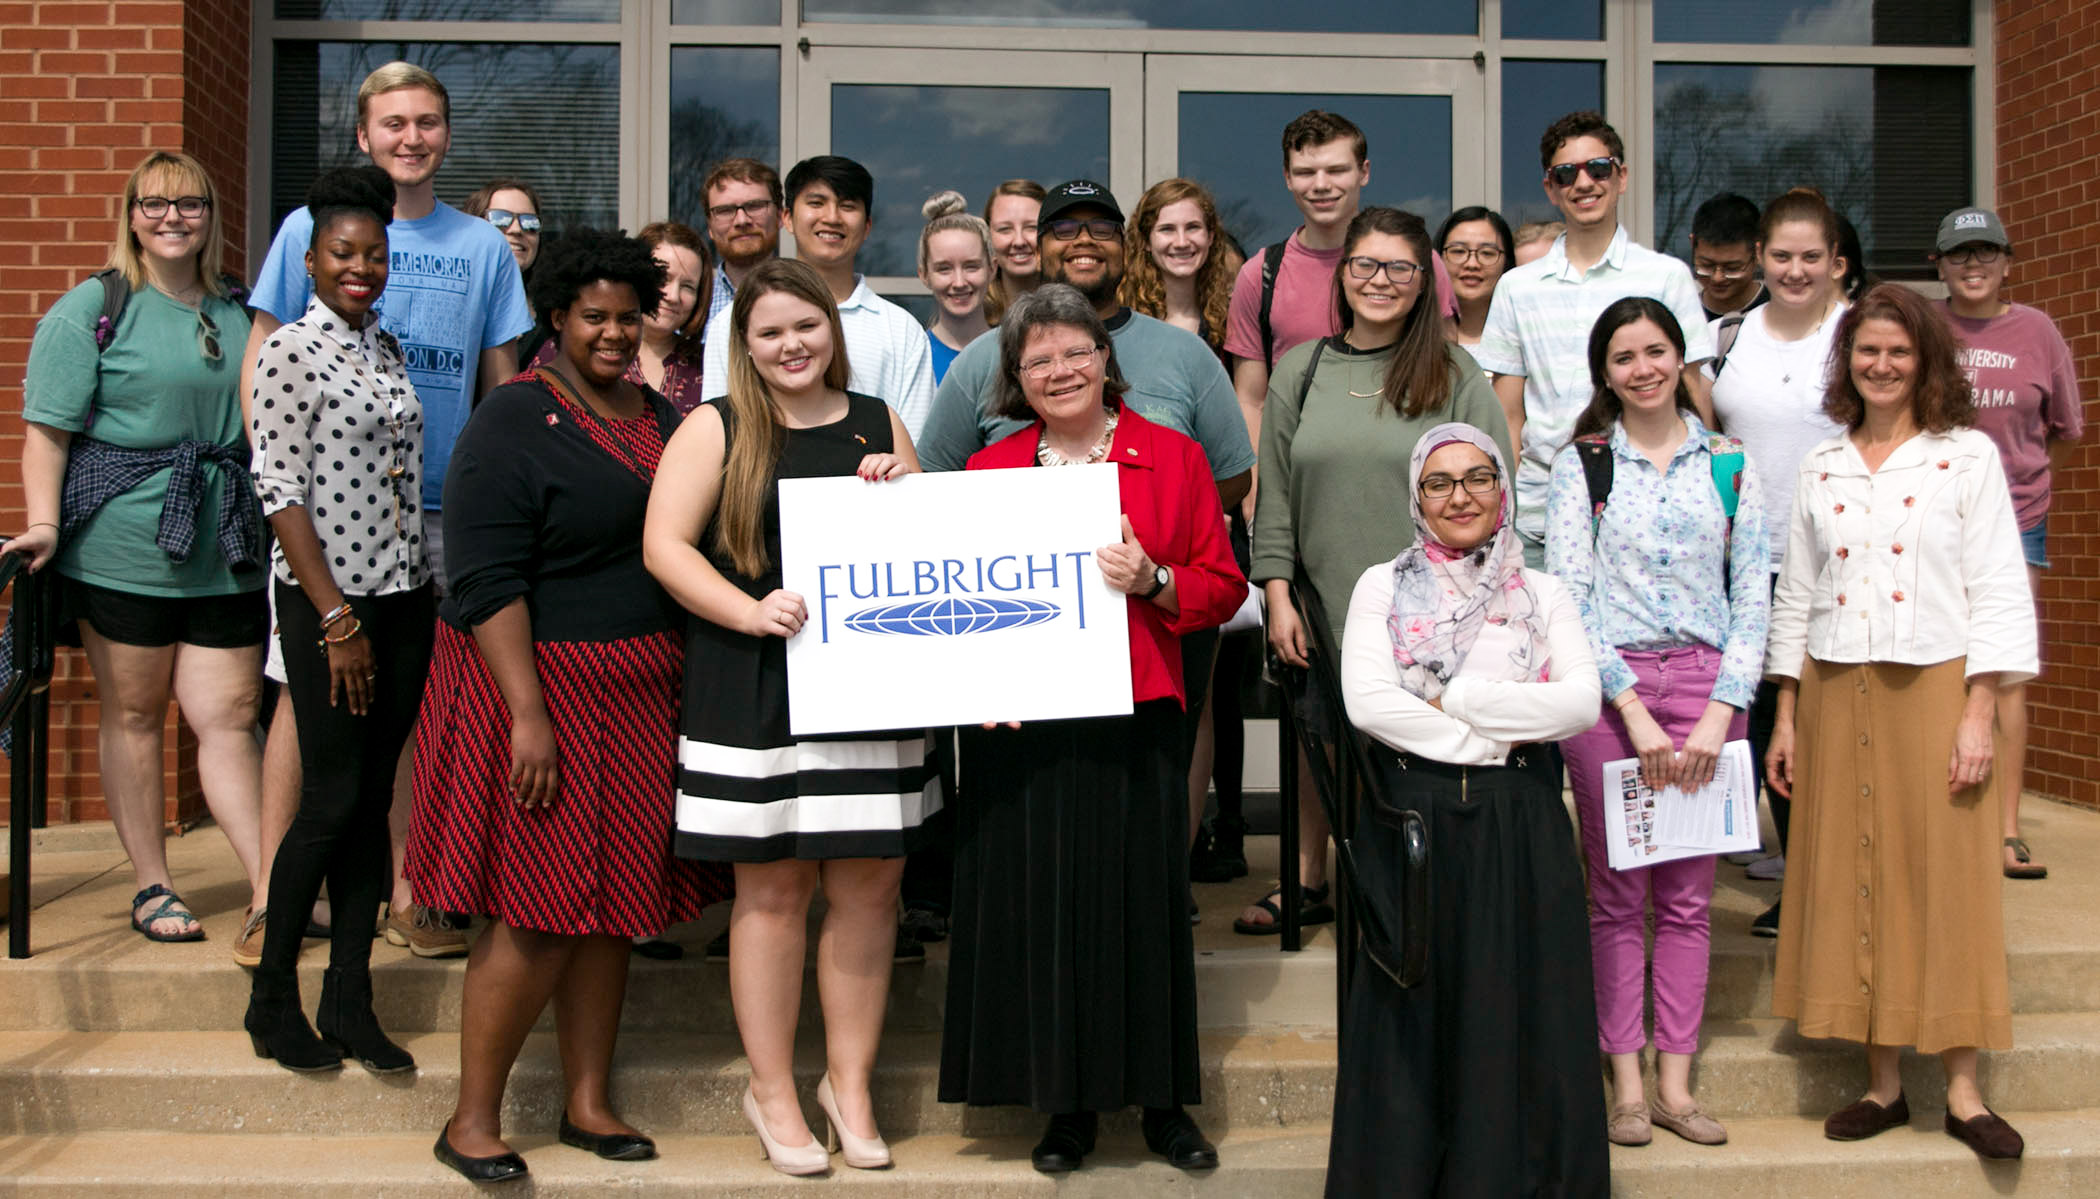 Fulbright winners, officials and students interested in the program pose for a group shot following the Februrary 22 meeting.